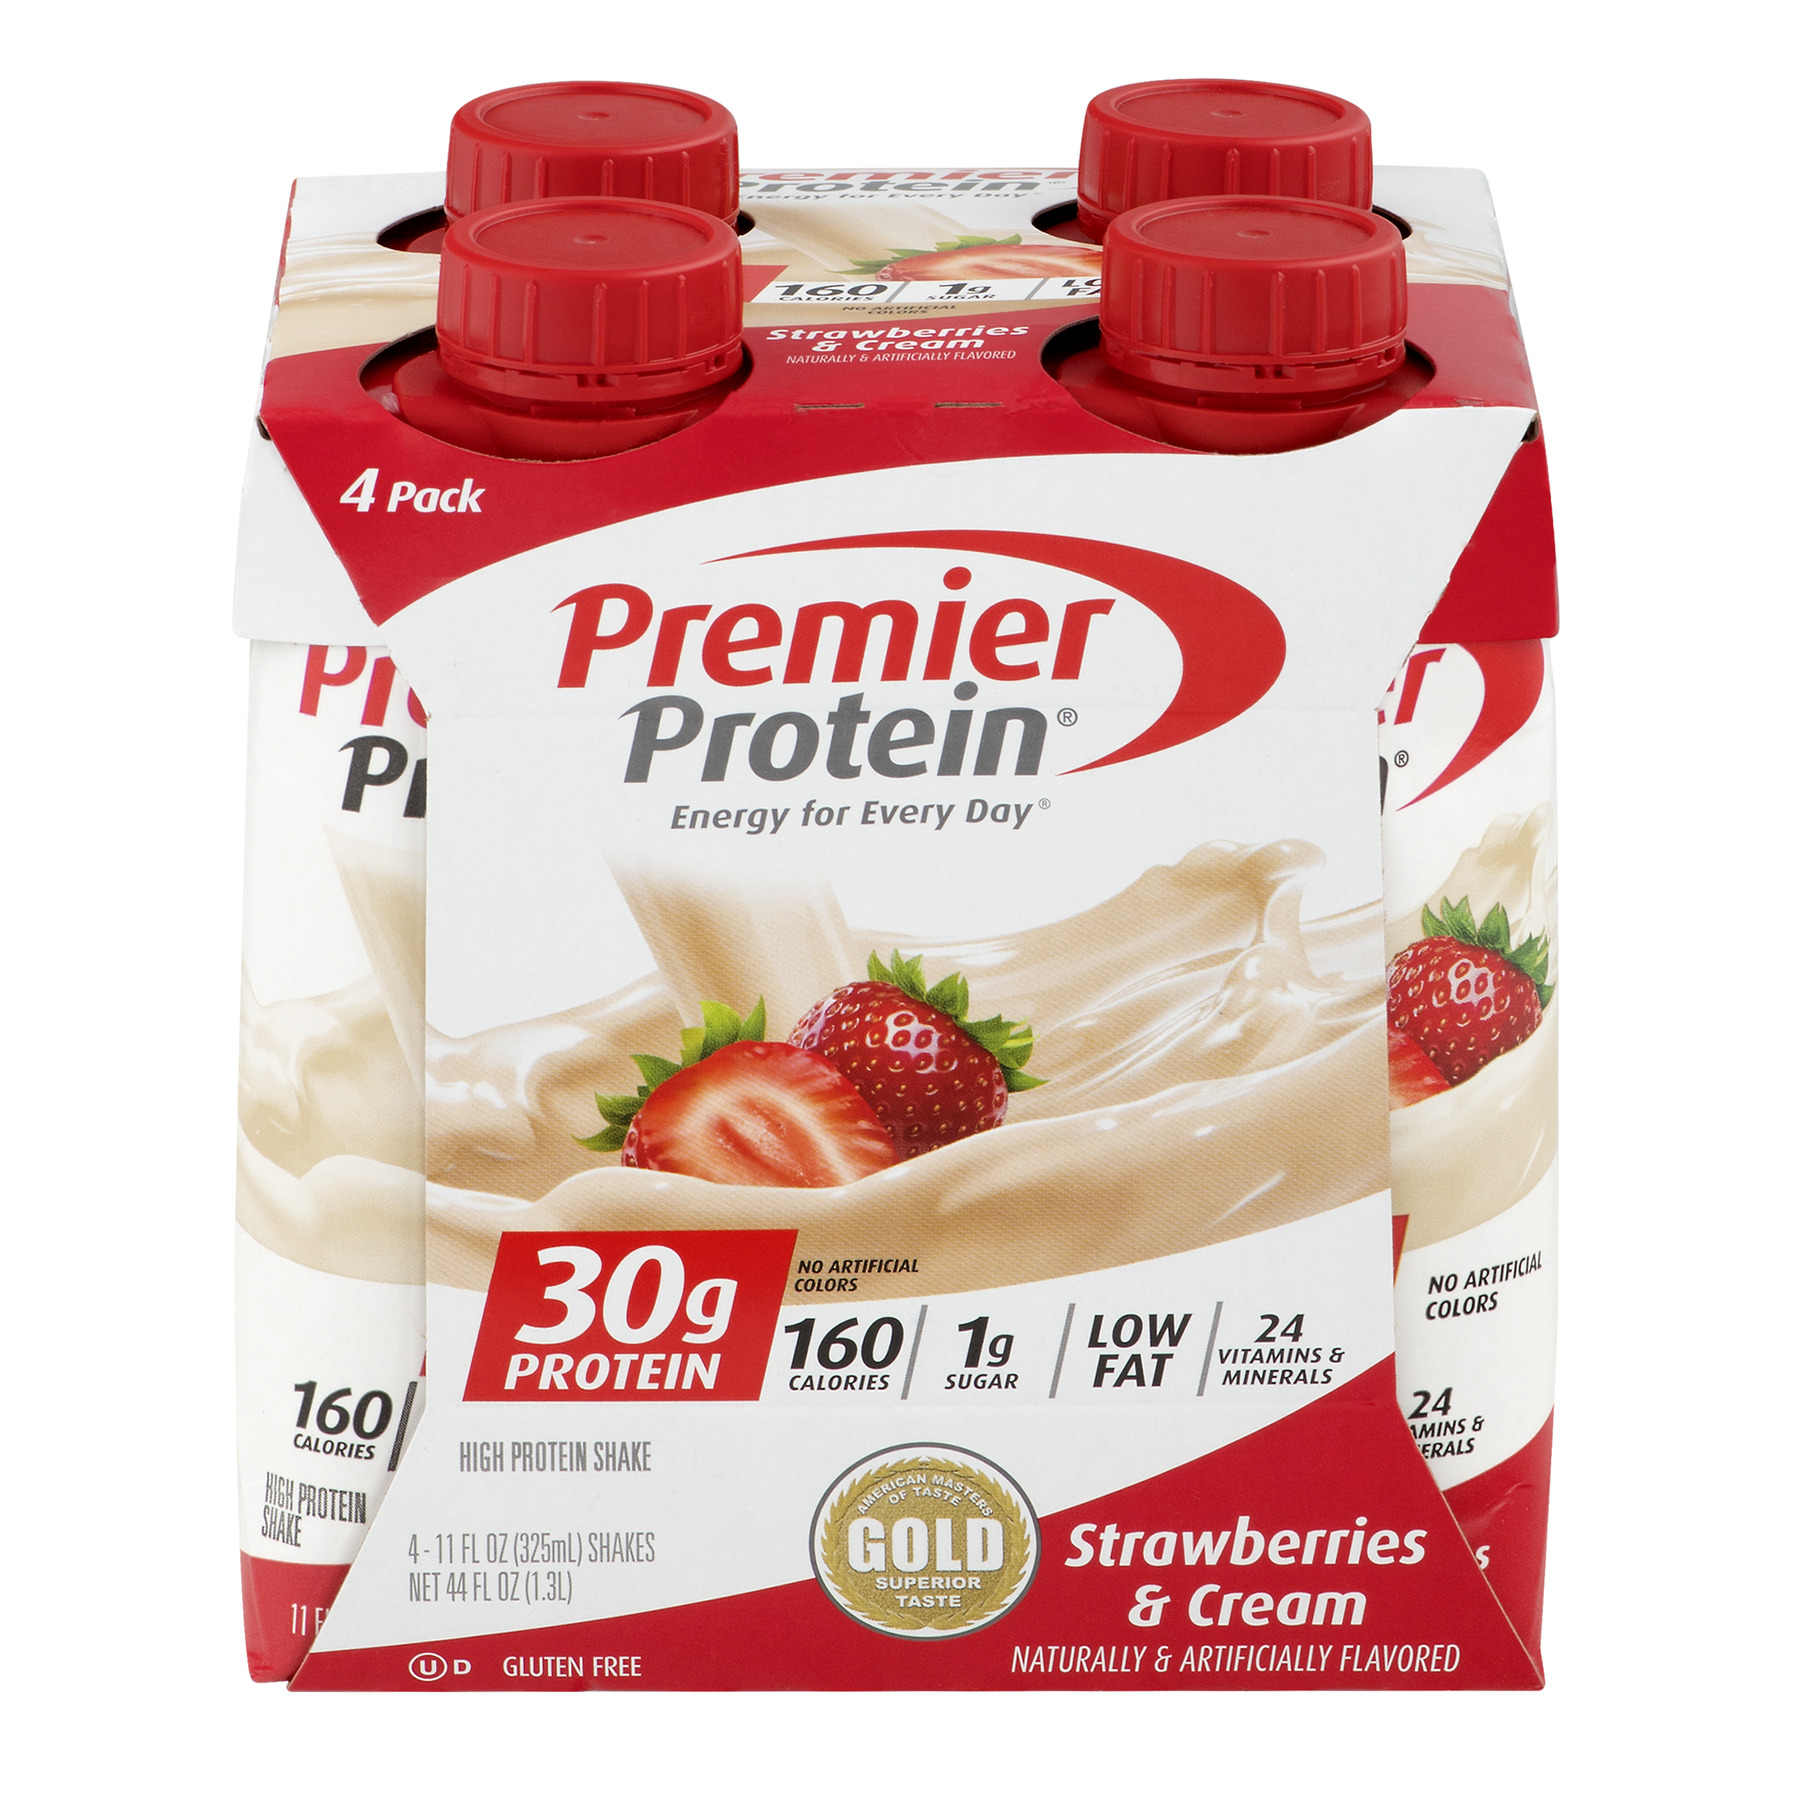 Premier Protein Shake, Strawberries & Cream, 30g Protein, 4 Ct